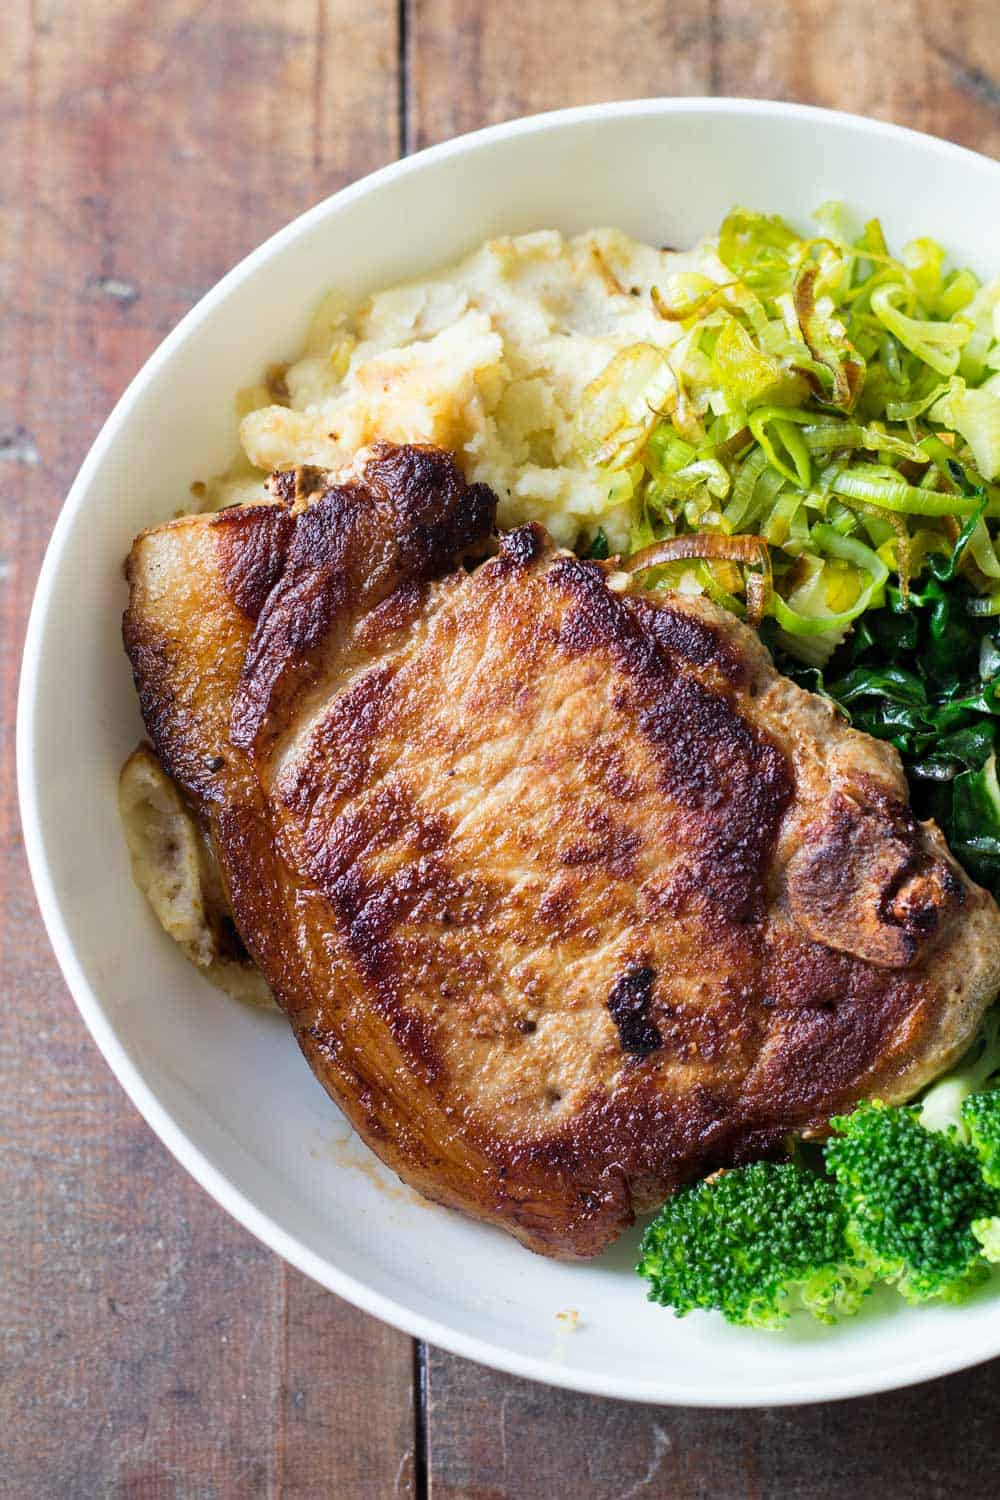 Perfect Pork Chop with Mashed Potatoes and Green Vegetables